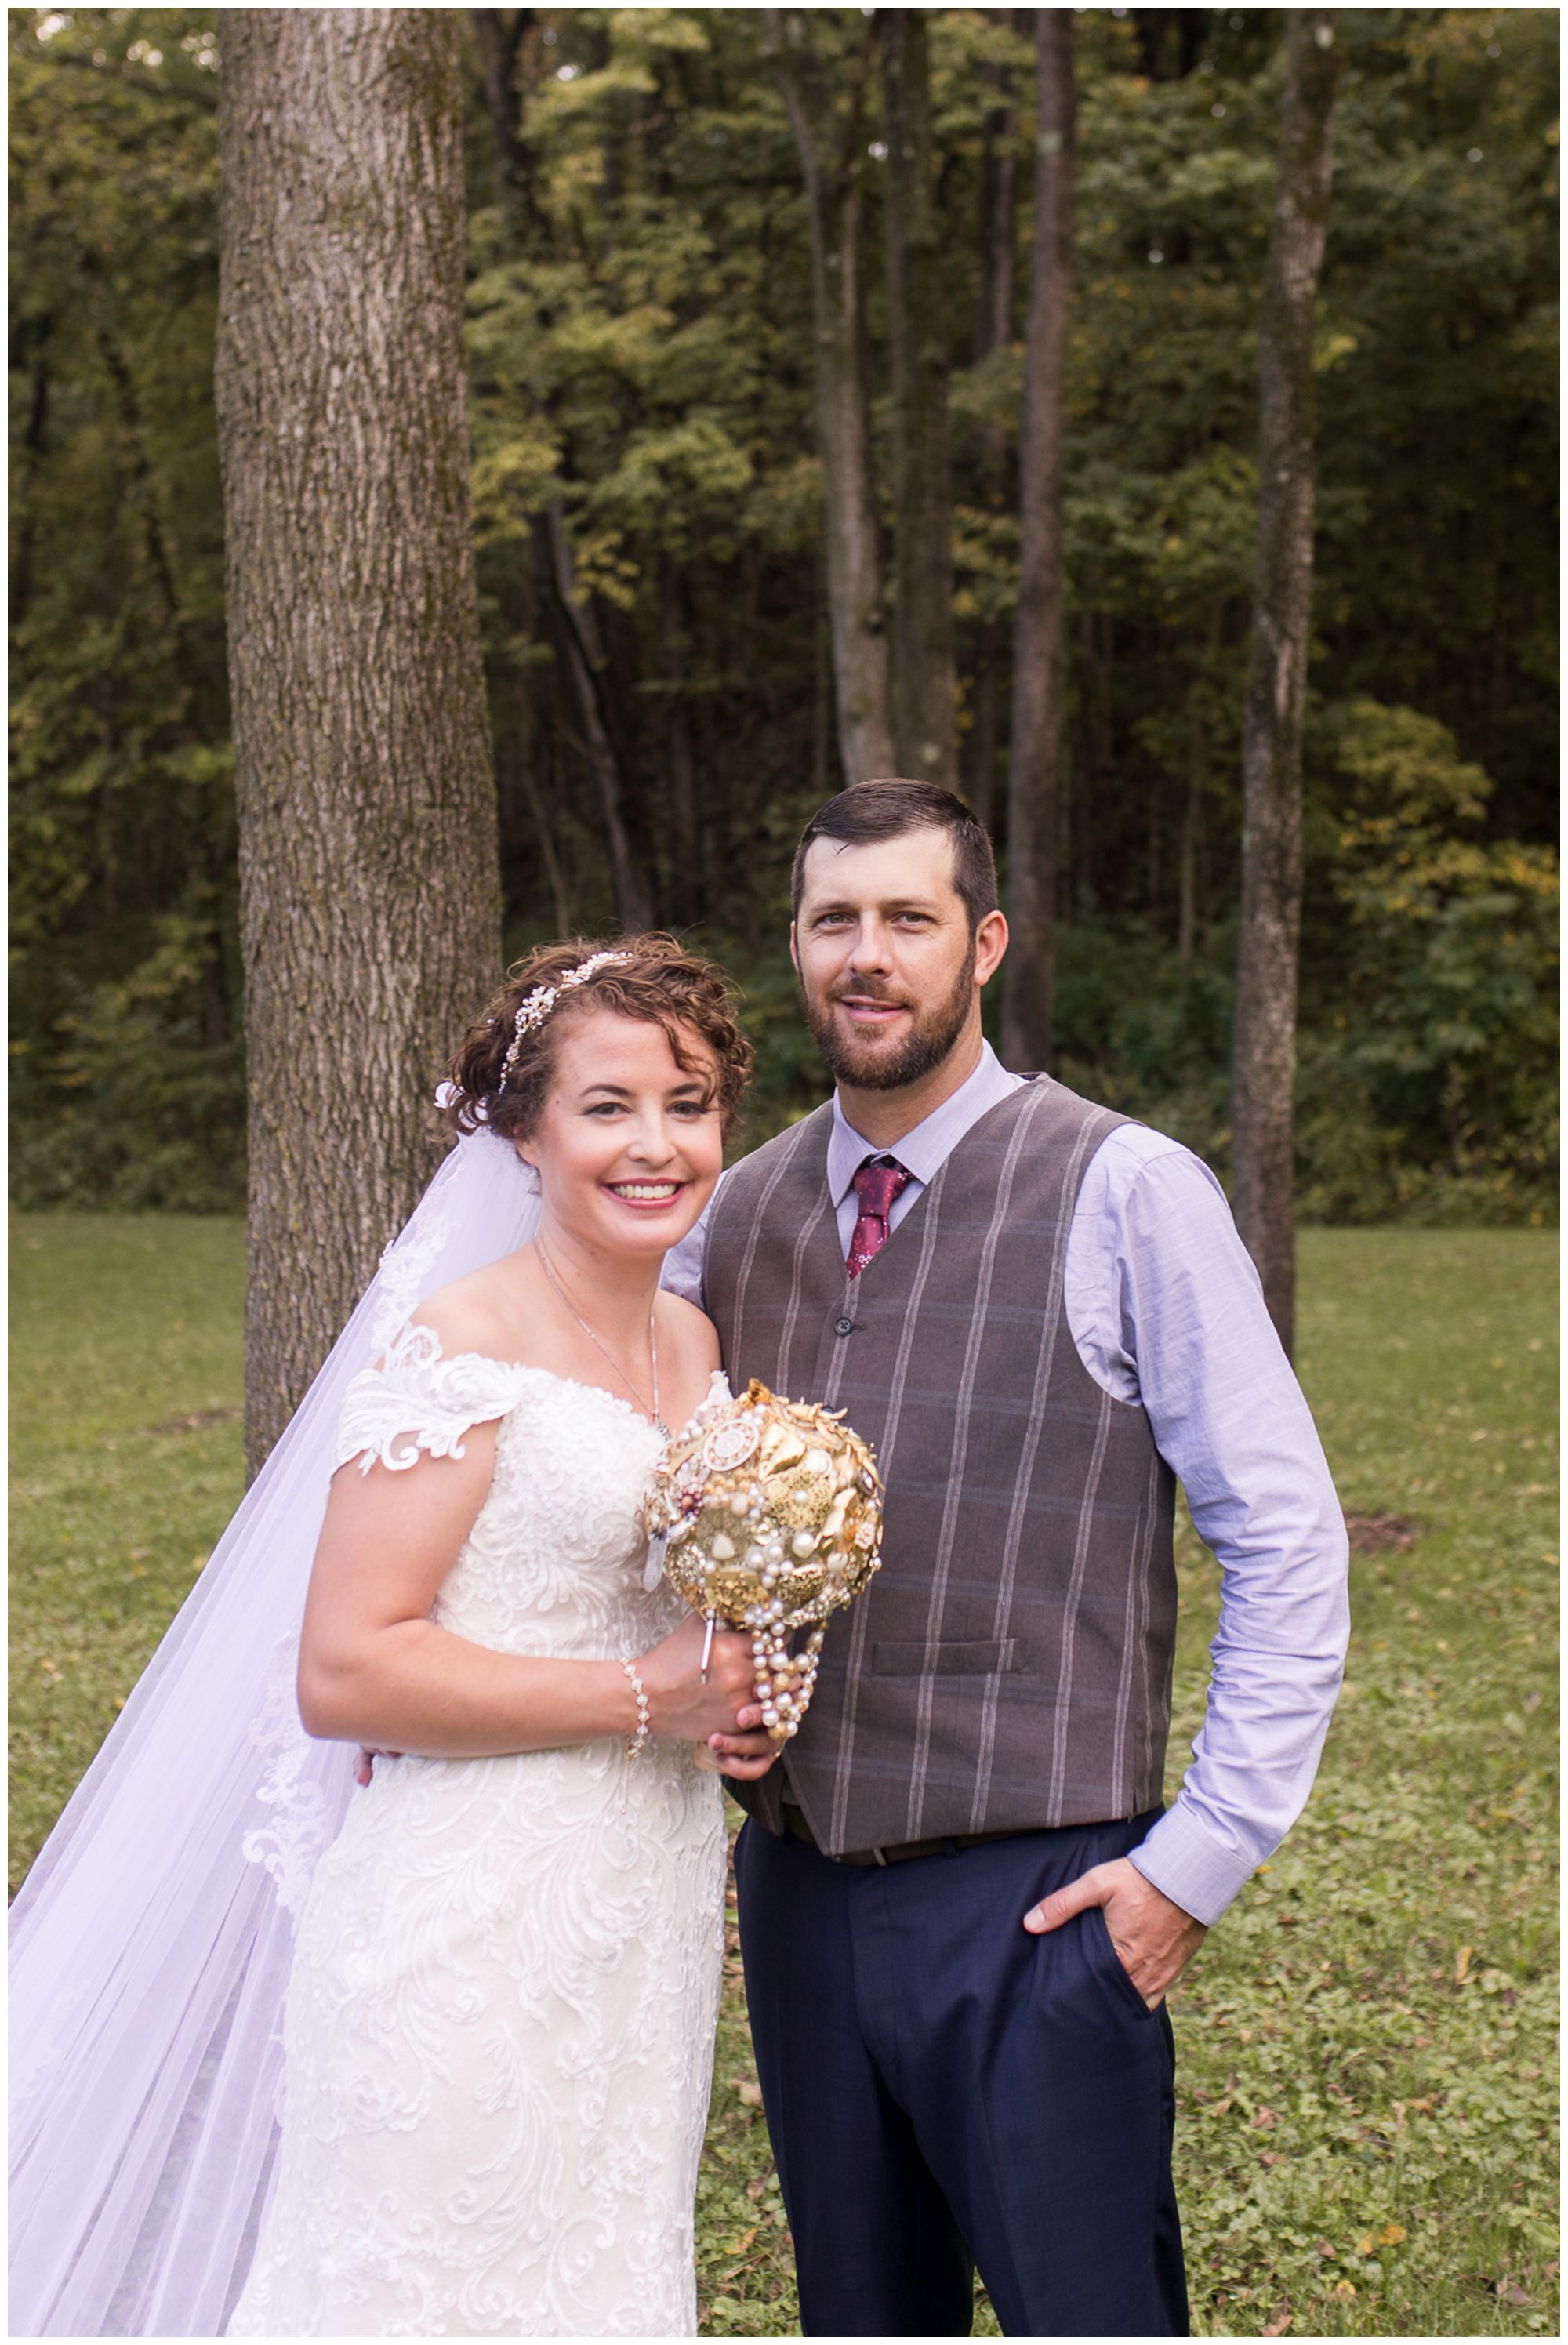 bride and groom wedding portraits at Western Howard Conservation Club in Peru Indiana